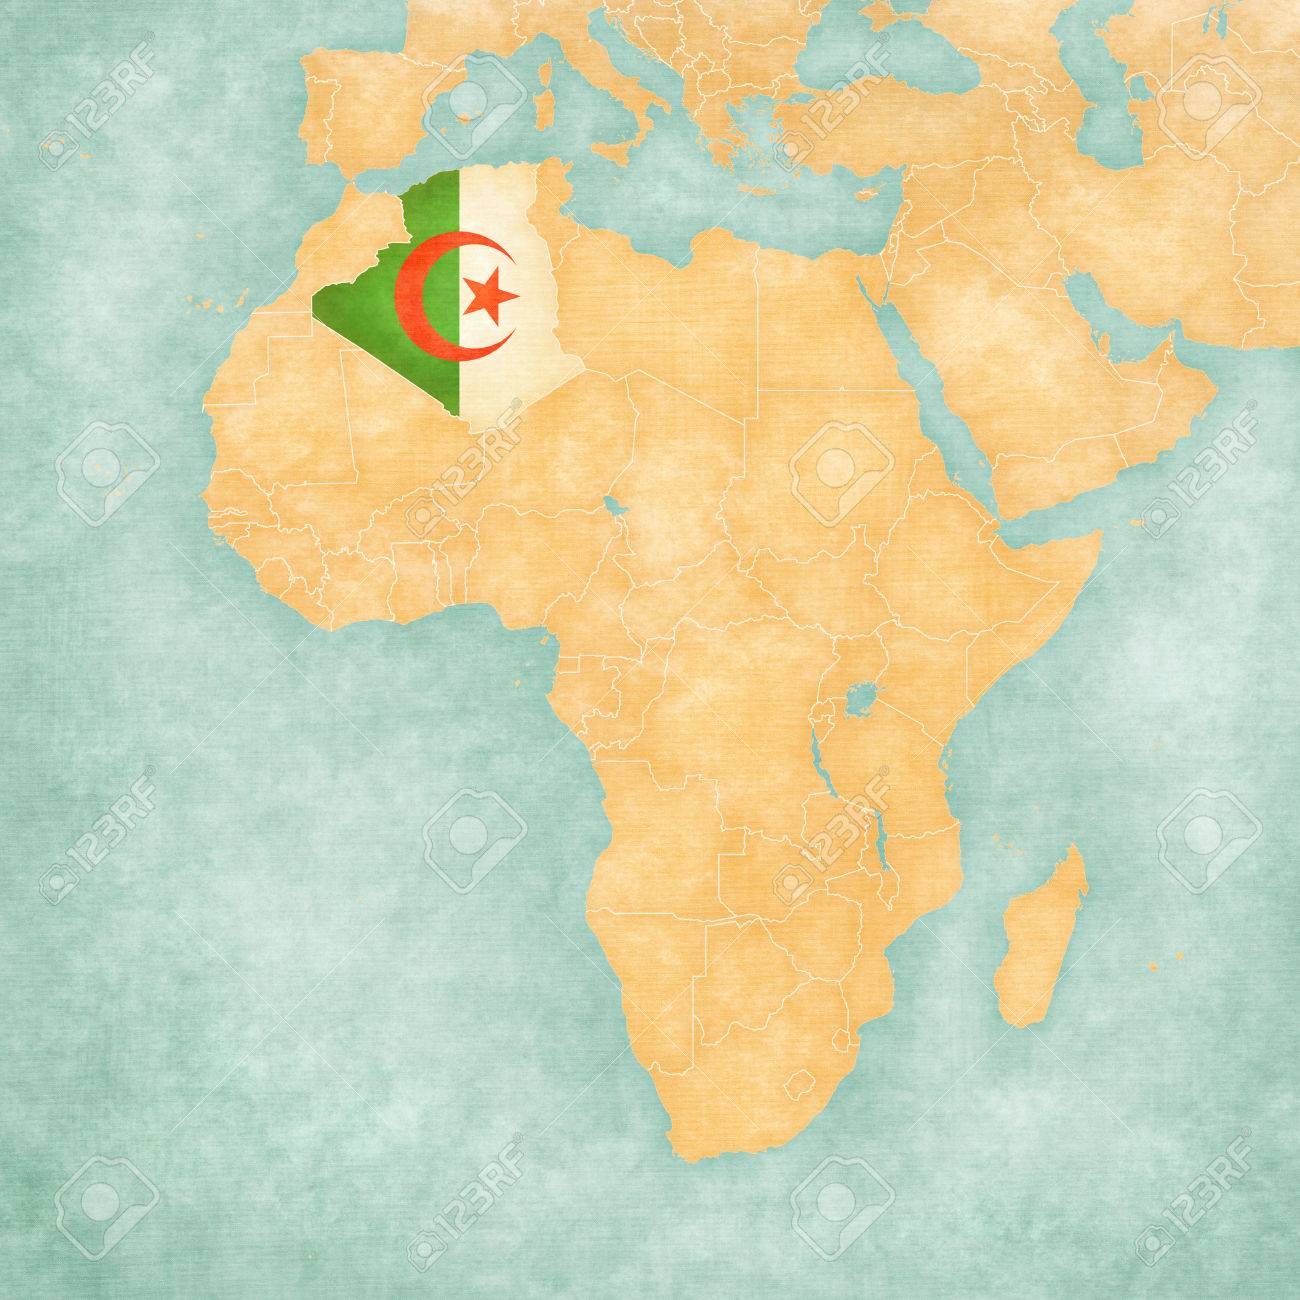 Algeria Algerian Flag On The Map Of Africa The Map Is In Vintage